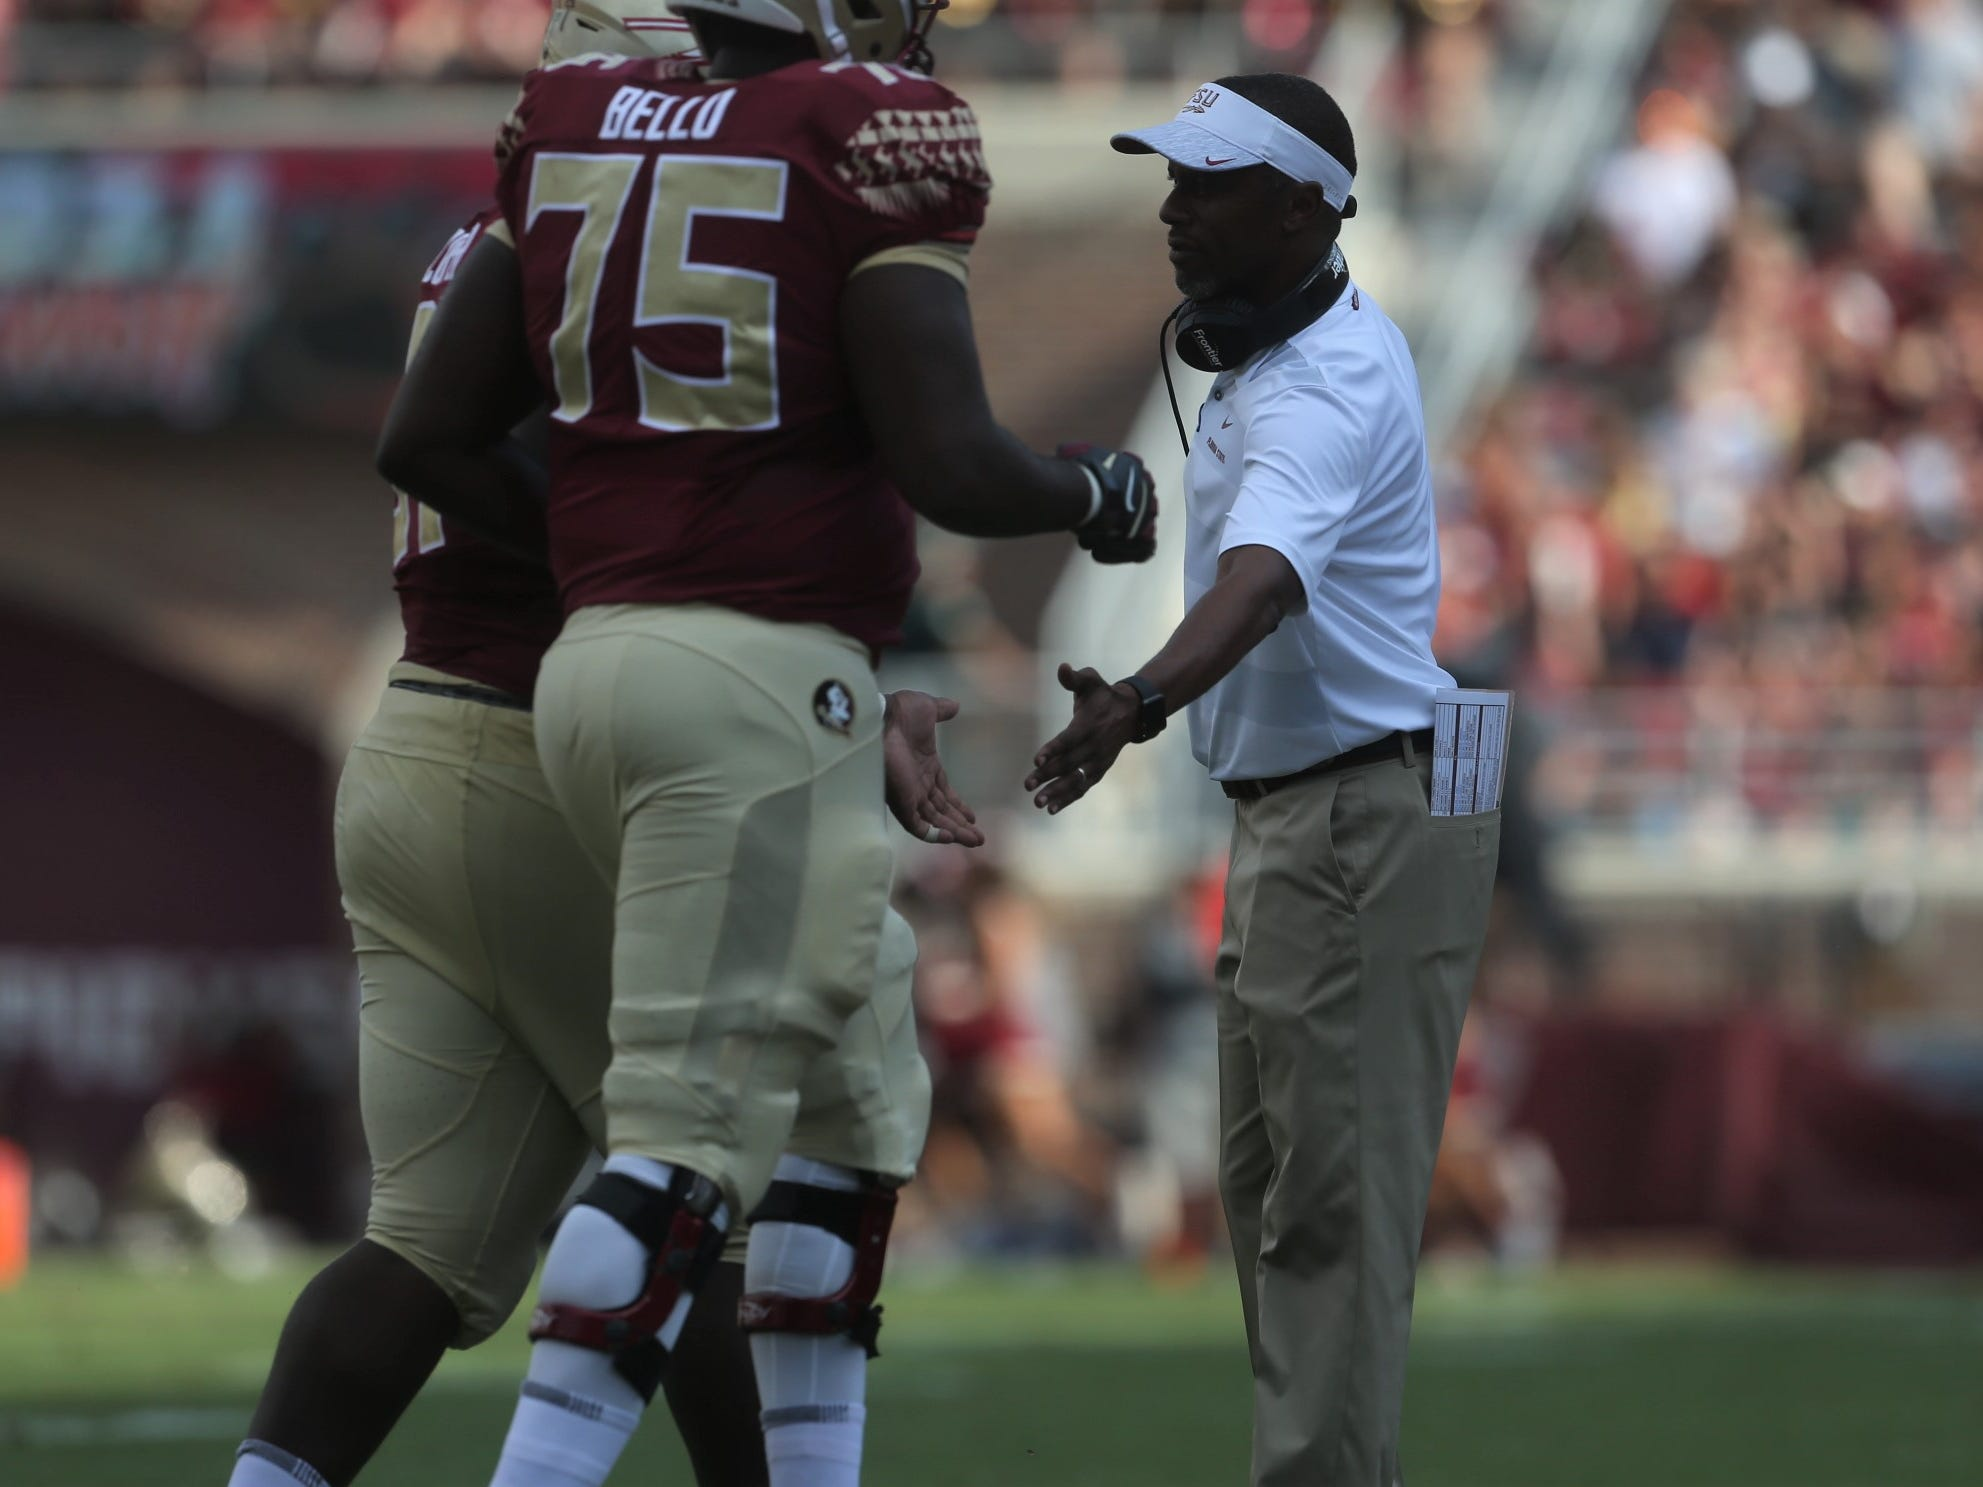 Florida State football head coach Willie Taggart congratulates his team after a touchdown during a game against Wake Forest at Doak Campbell Stadium on Saturday, Oct. 20, 2018.